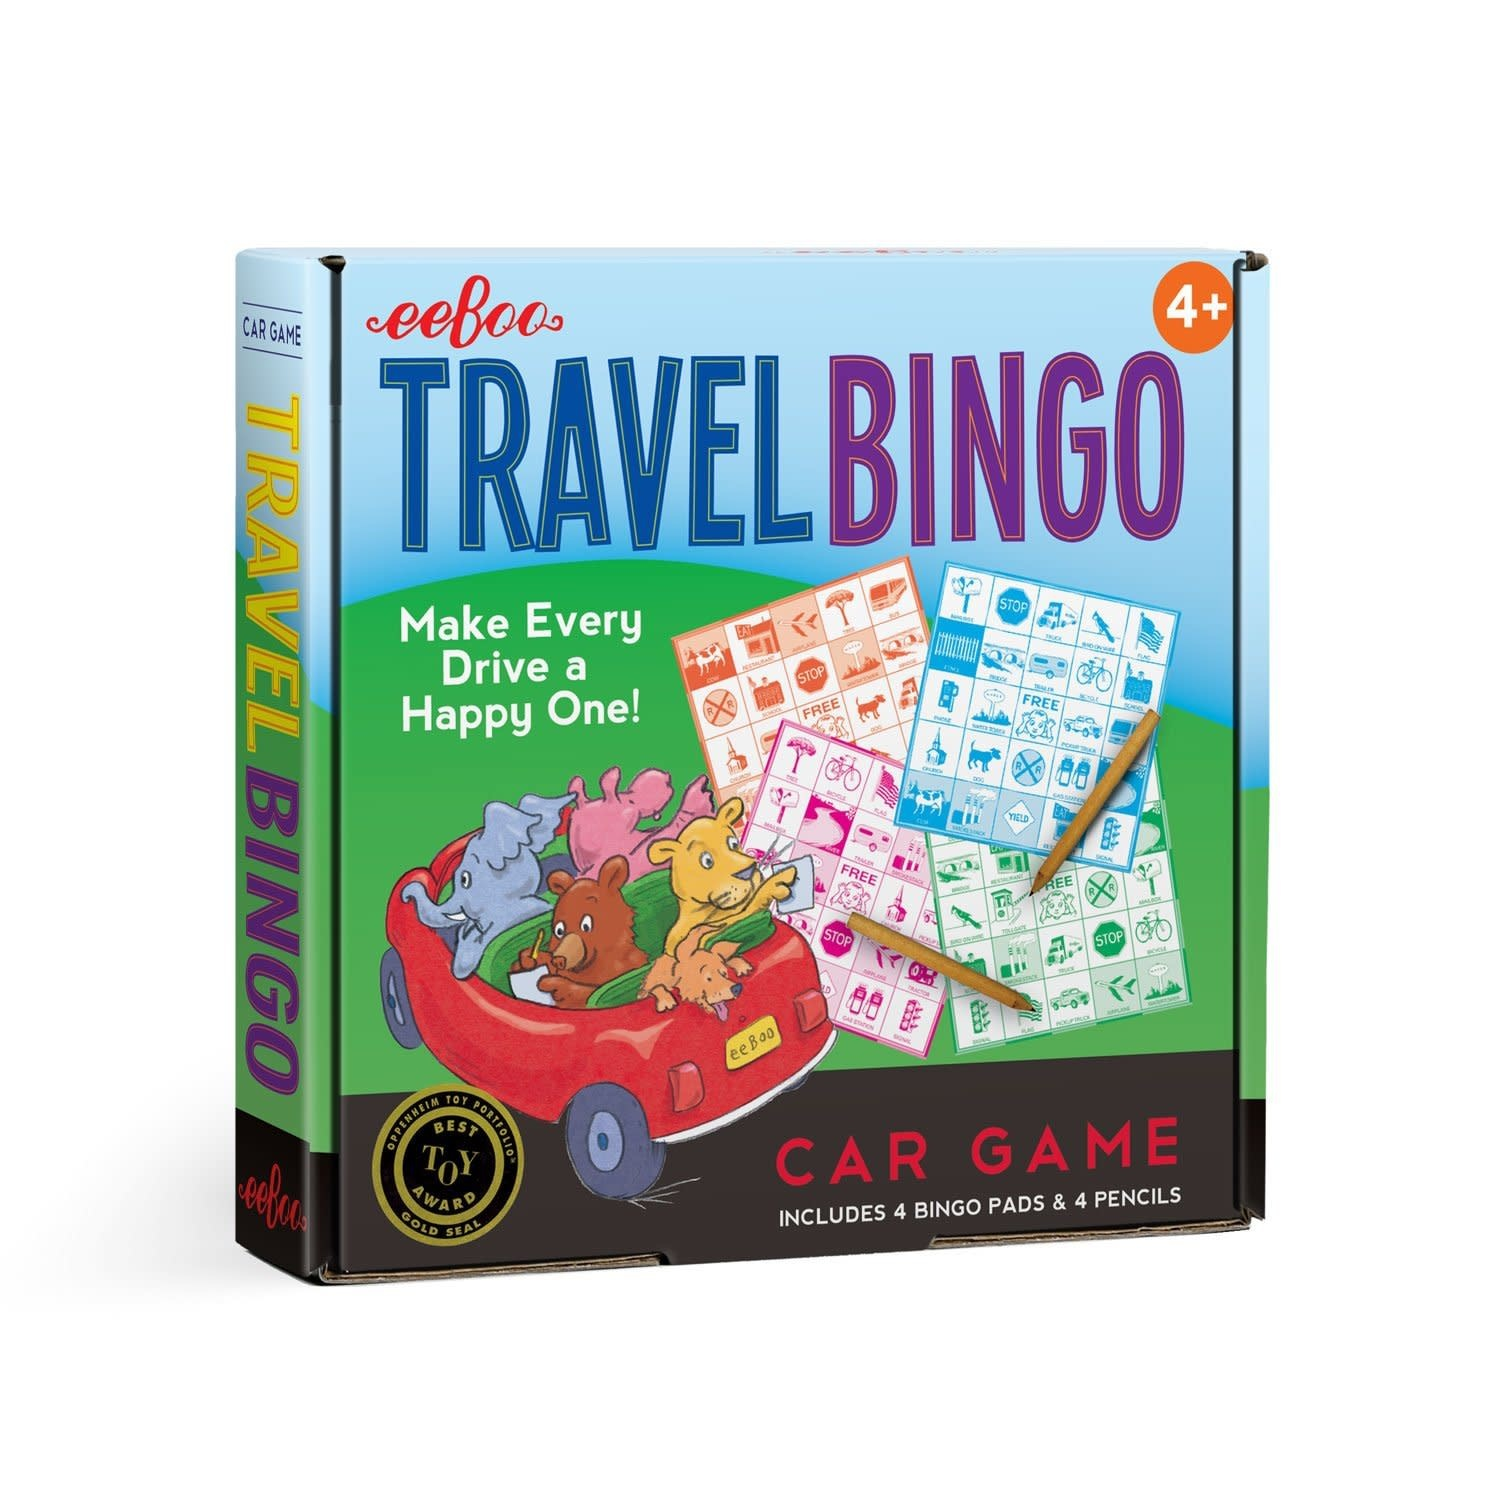 Eeboo Travel Bingo Car Game (with Pads and Pencils)